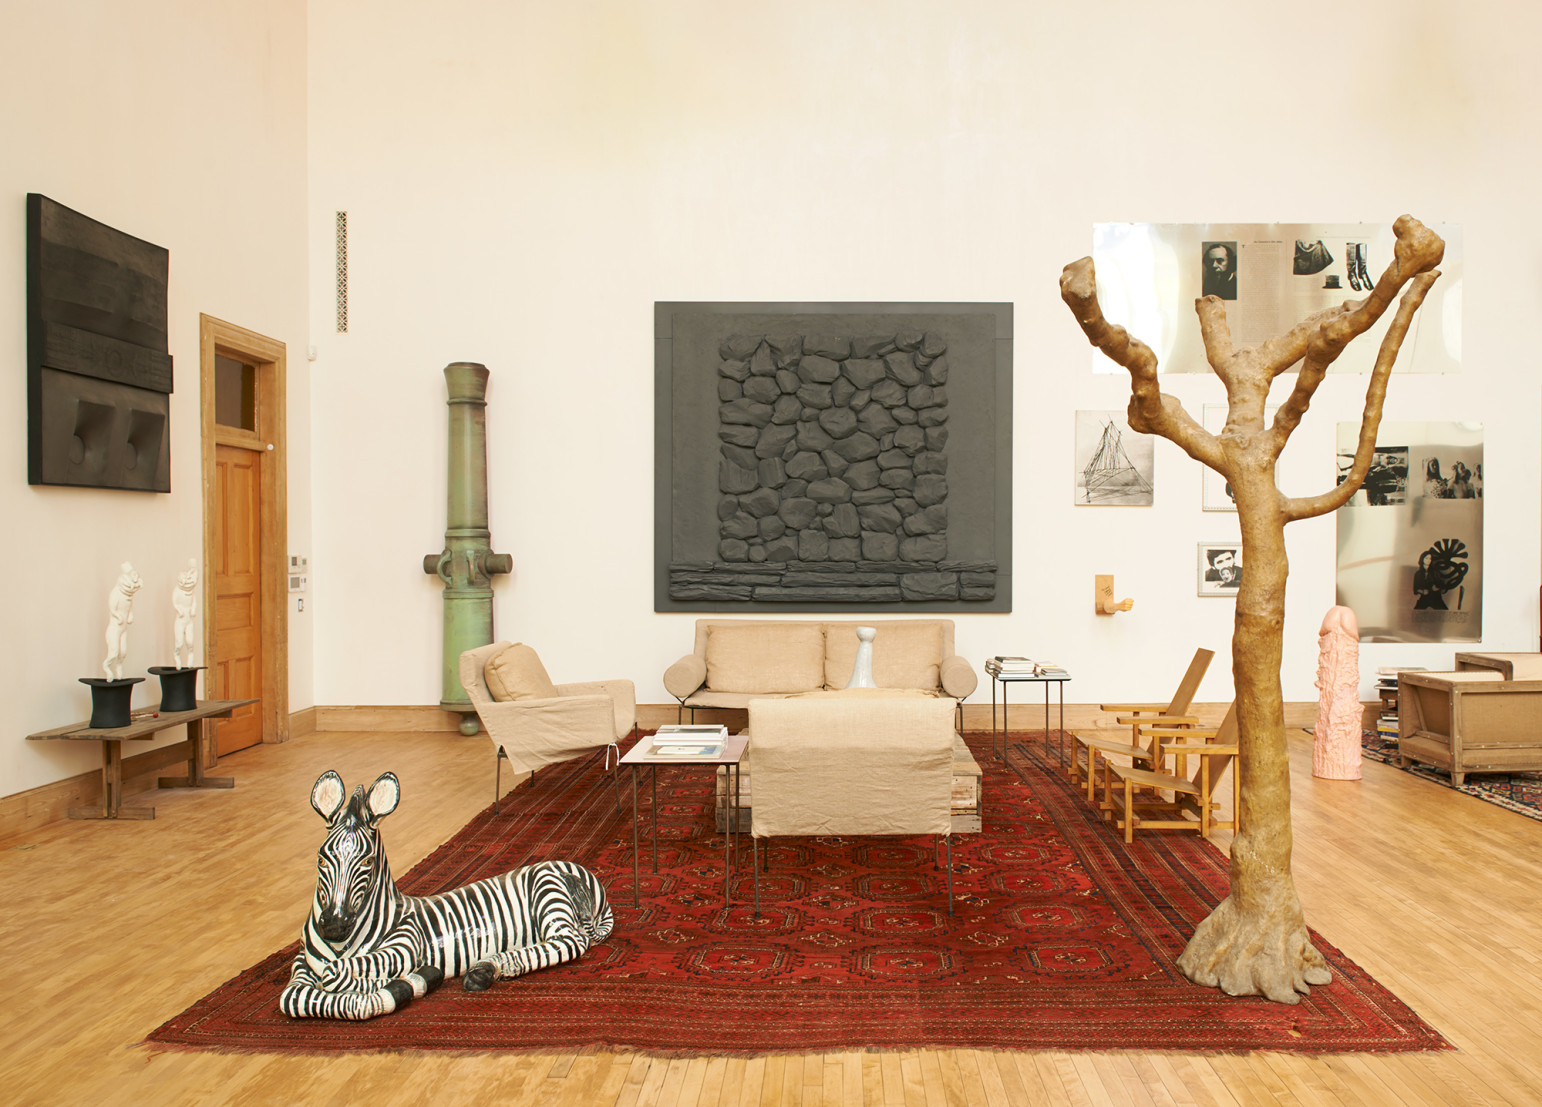 2017 05 morning wood alexander masson sandra rose - An Italian Ceramic Zebra Holds Court In The Living Room Among Rondinone S Tree Sculpture Bright Shiny Morning 1997 Sarah Lucas S Phallic Oboddaddy 2